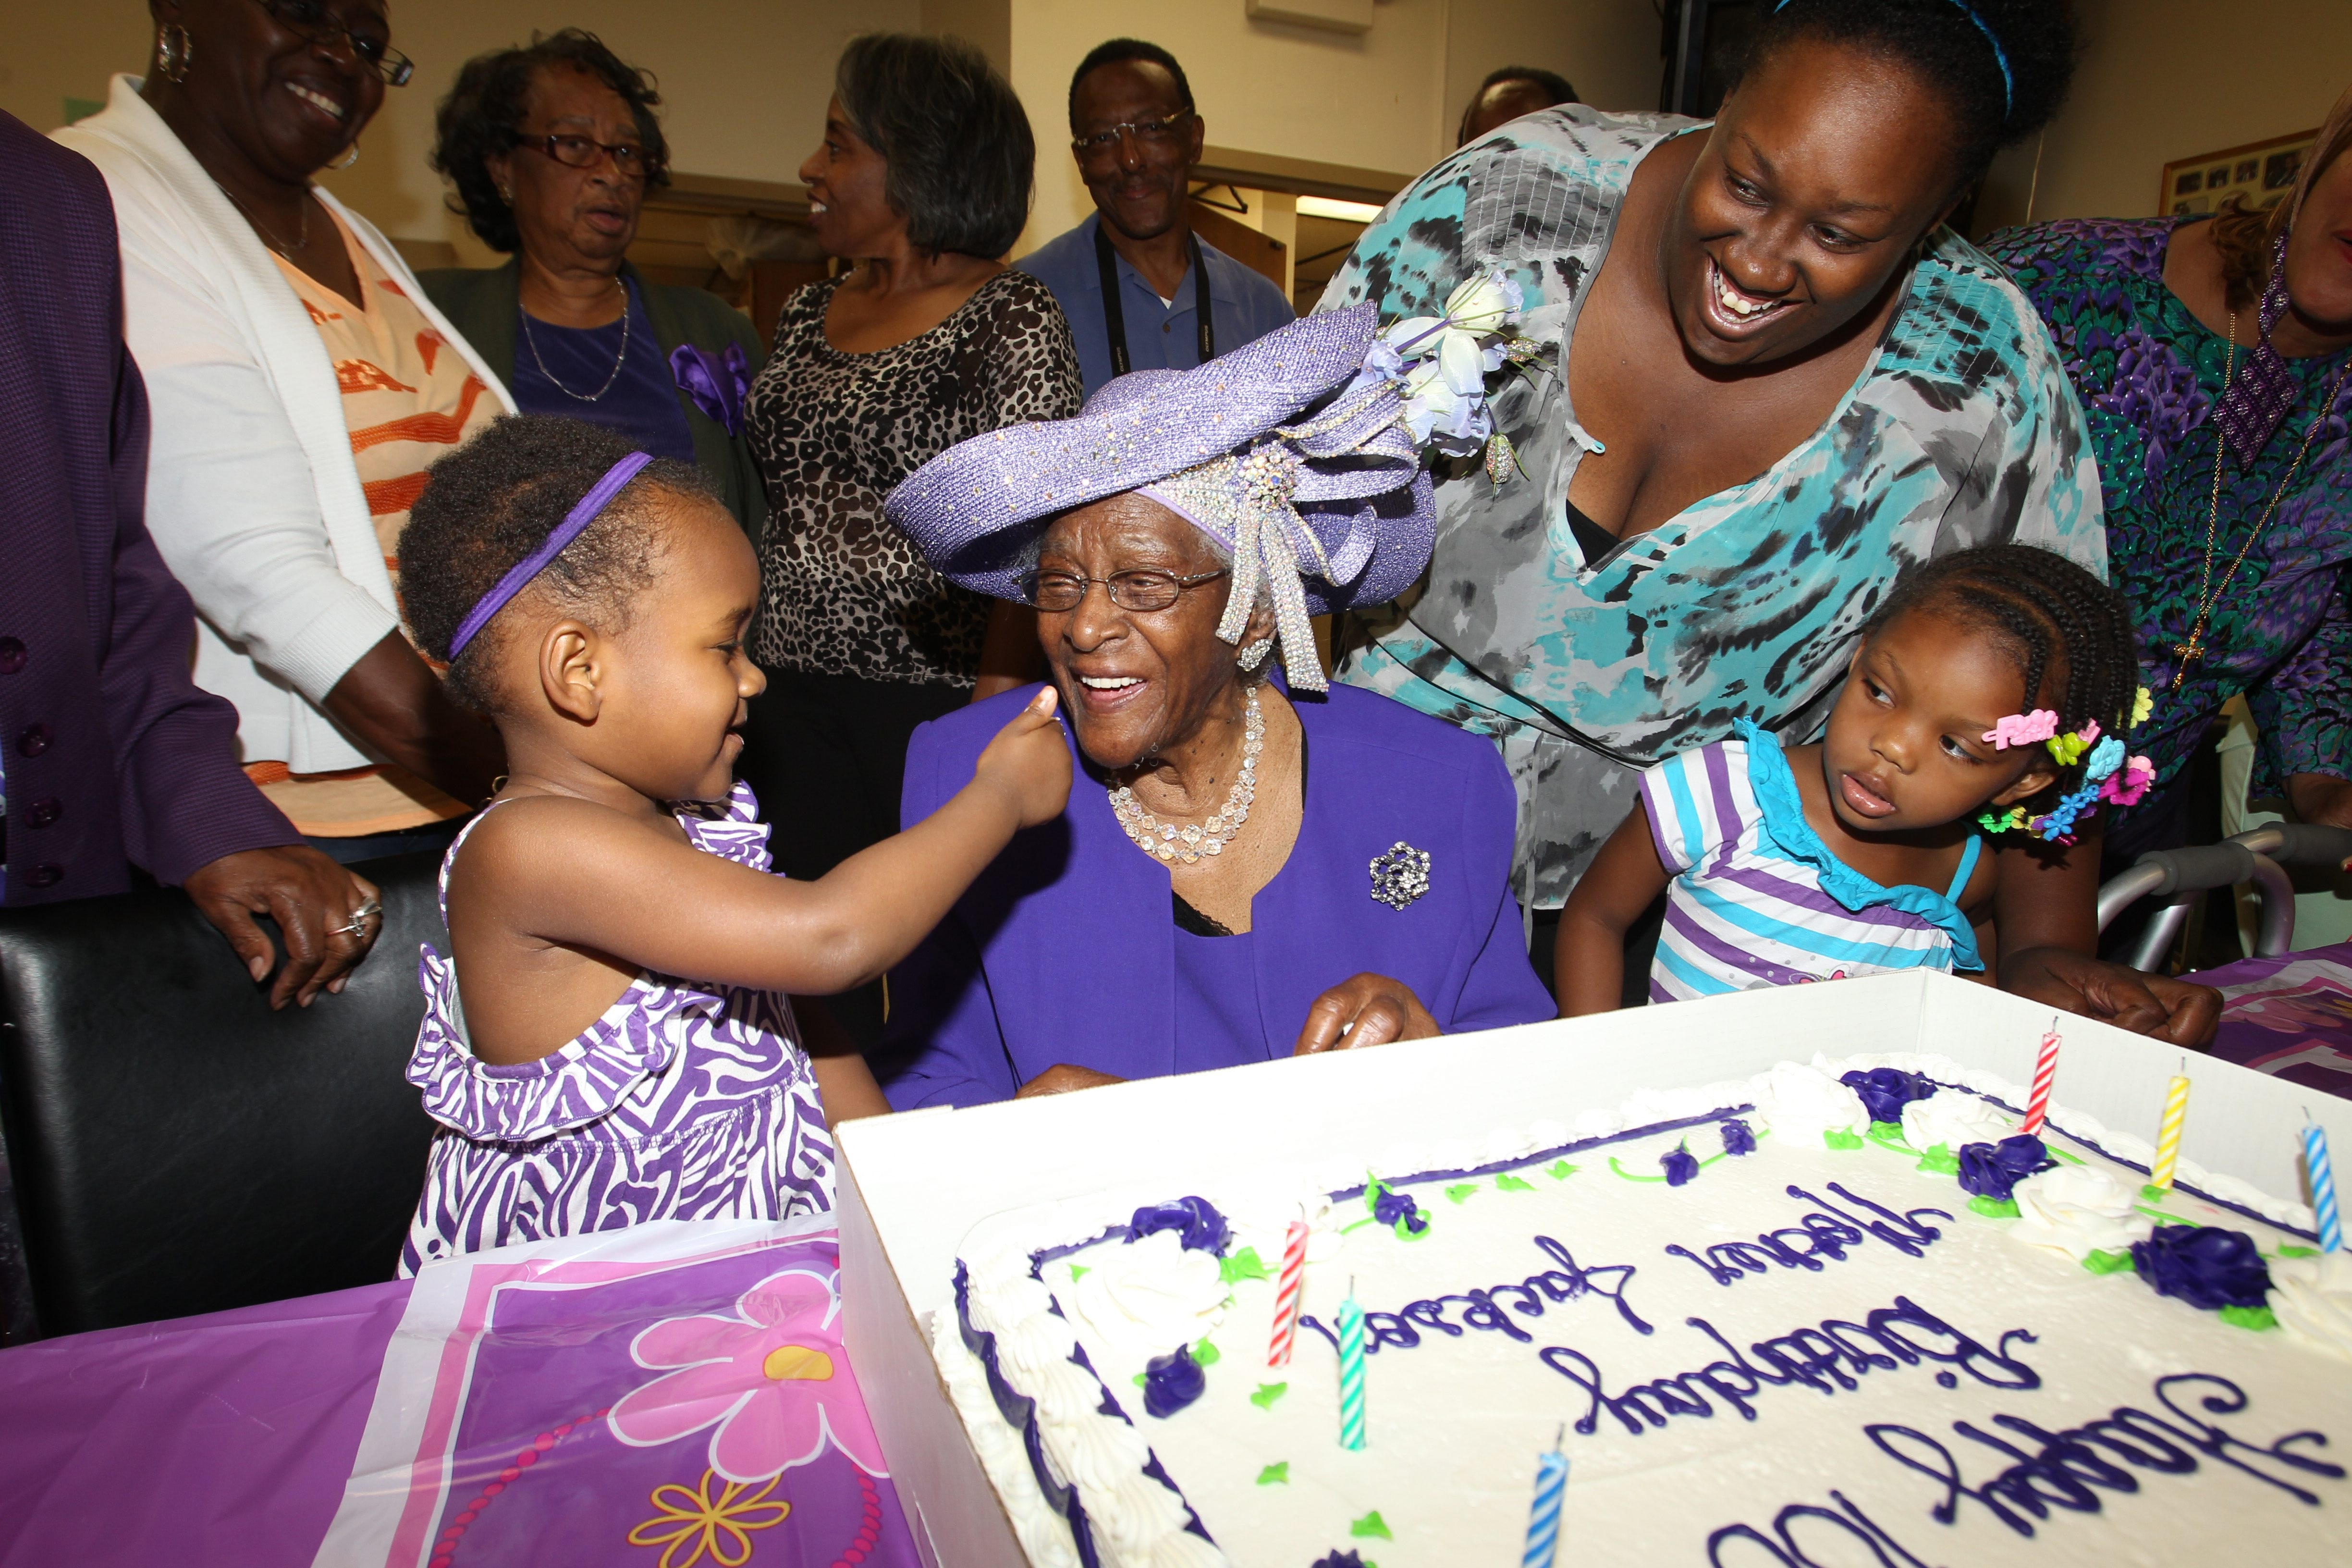 Aynna Jones gives a piece of frosting to her great, great, great-aunt Amanda Corrine Pugh Jackson as friends and family cheer her on at Jackson's 100th birthday party. See a photo gallery at BuffaloNews.com.